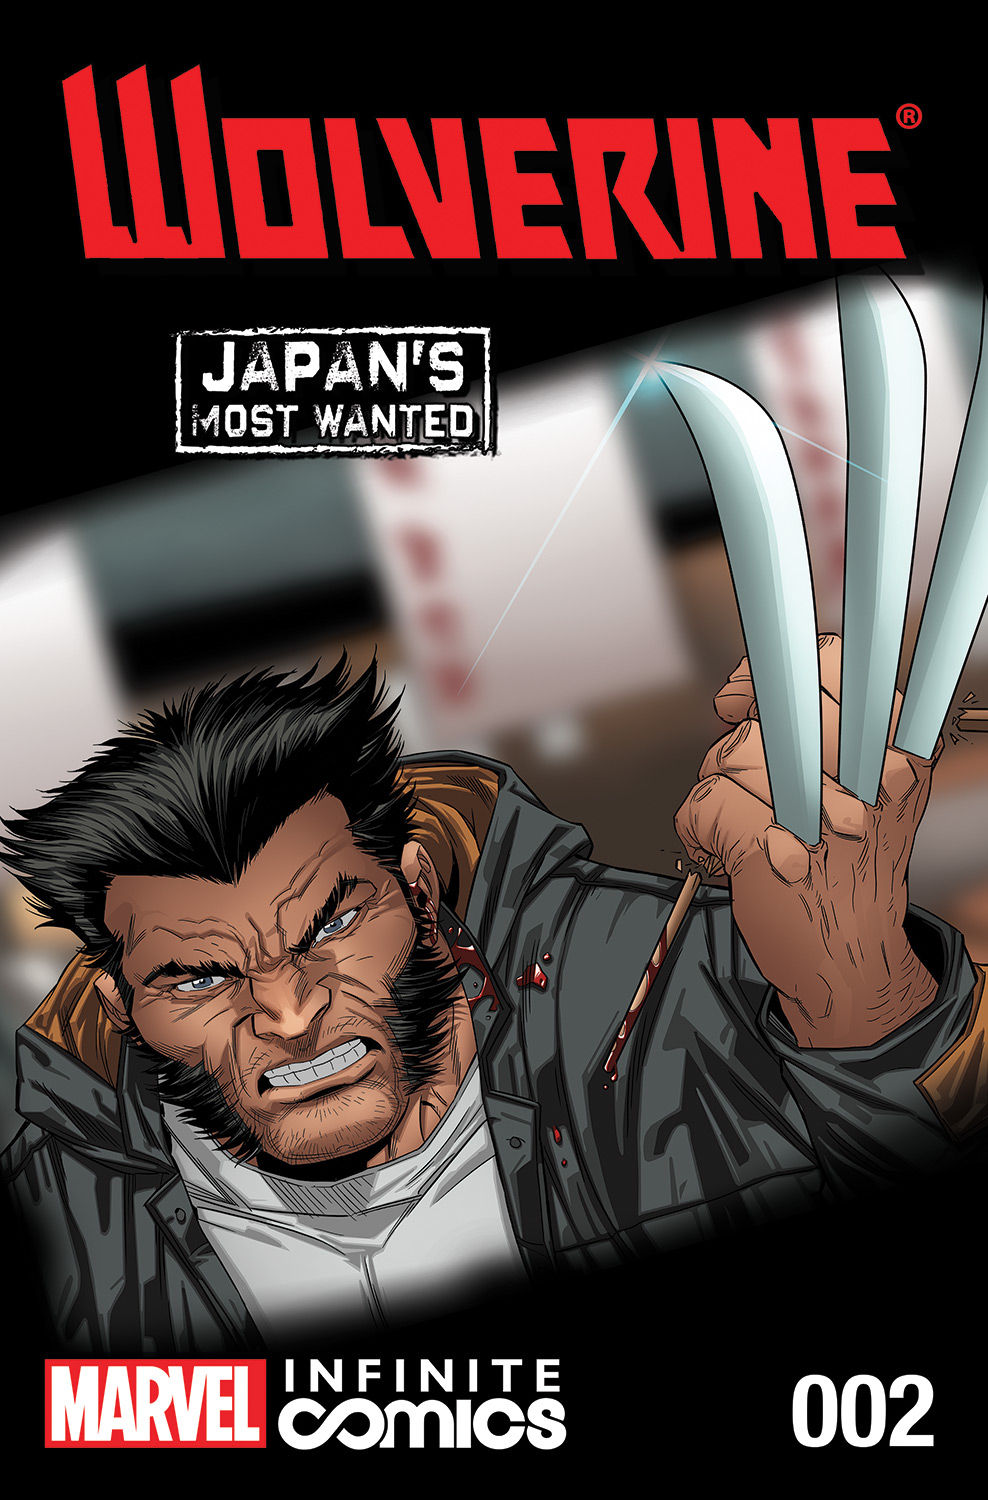 Wolverine: Japan's Most Wanted Infinite Comic (2013) #2